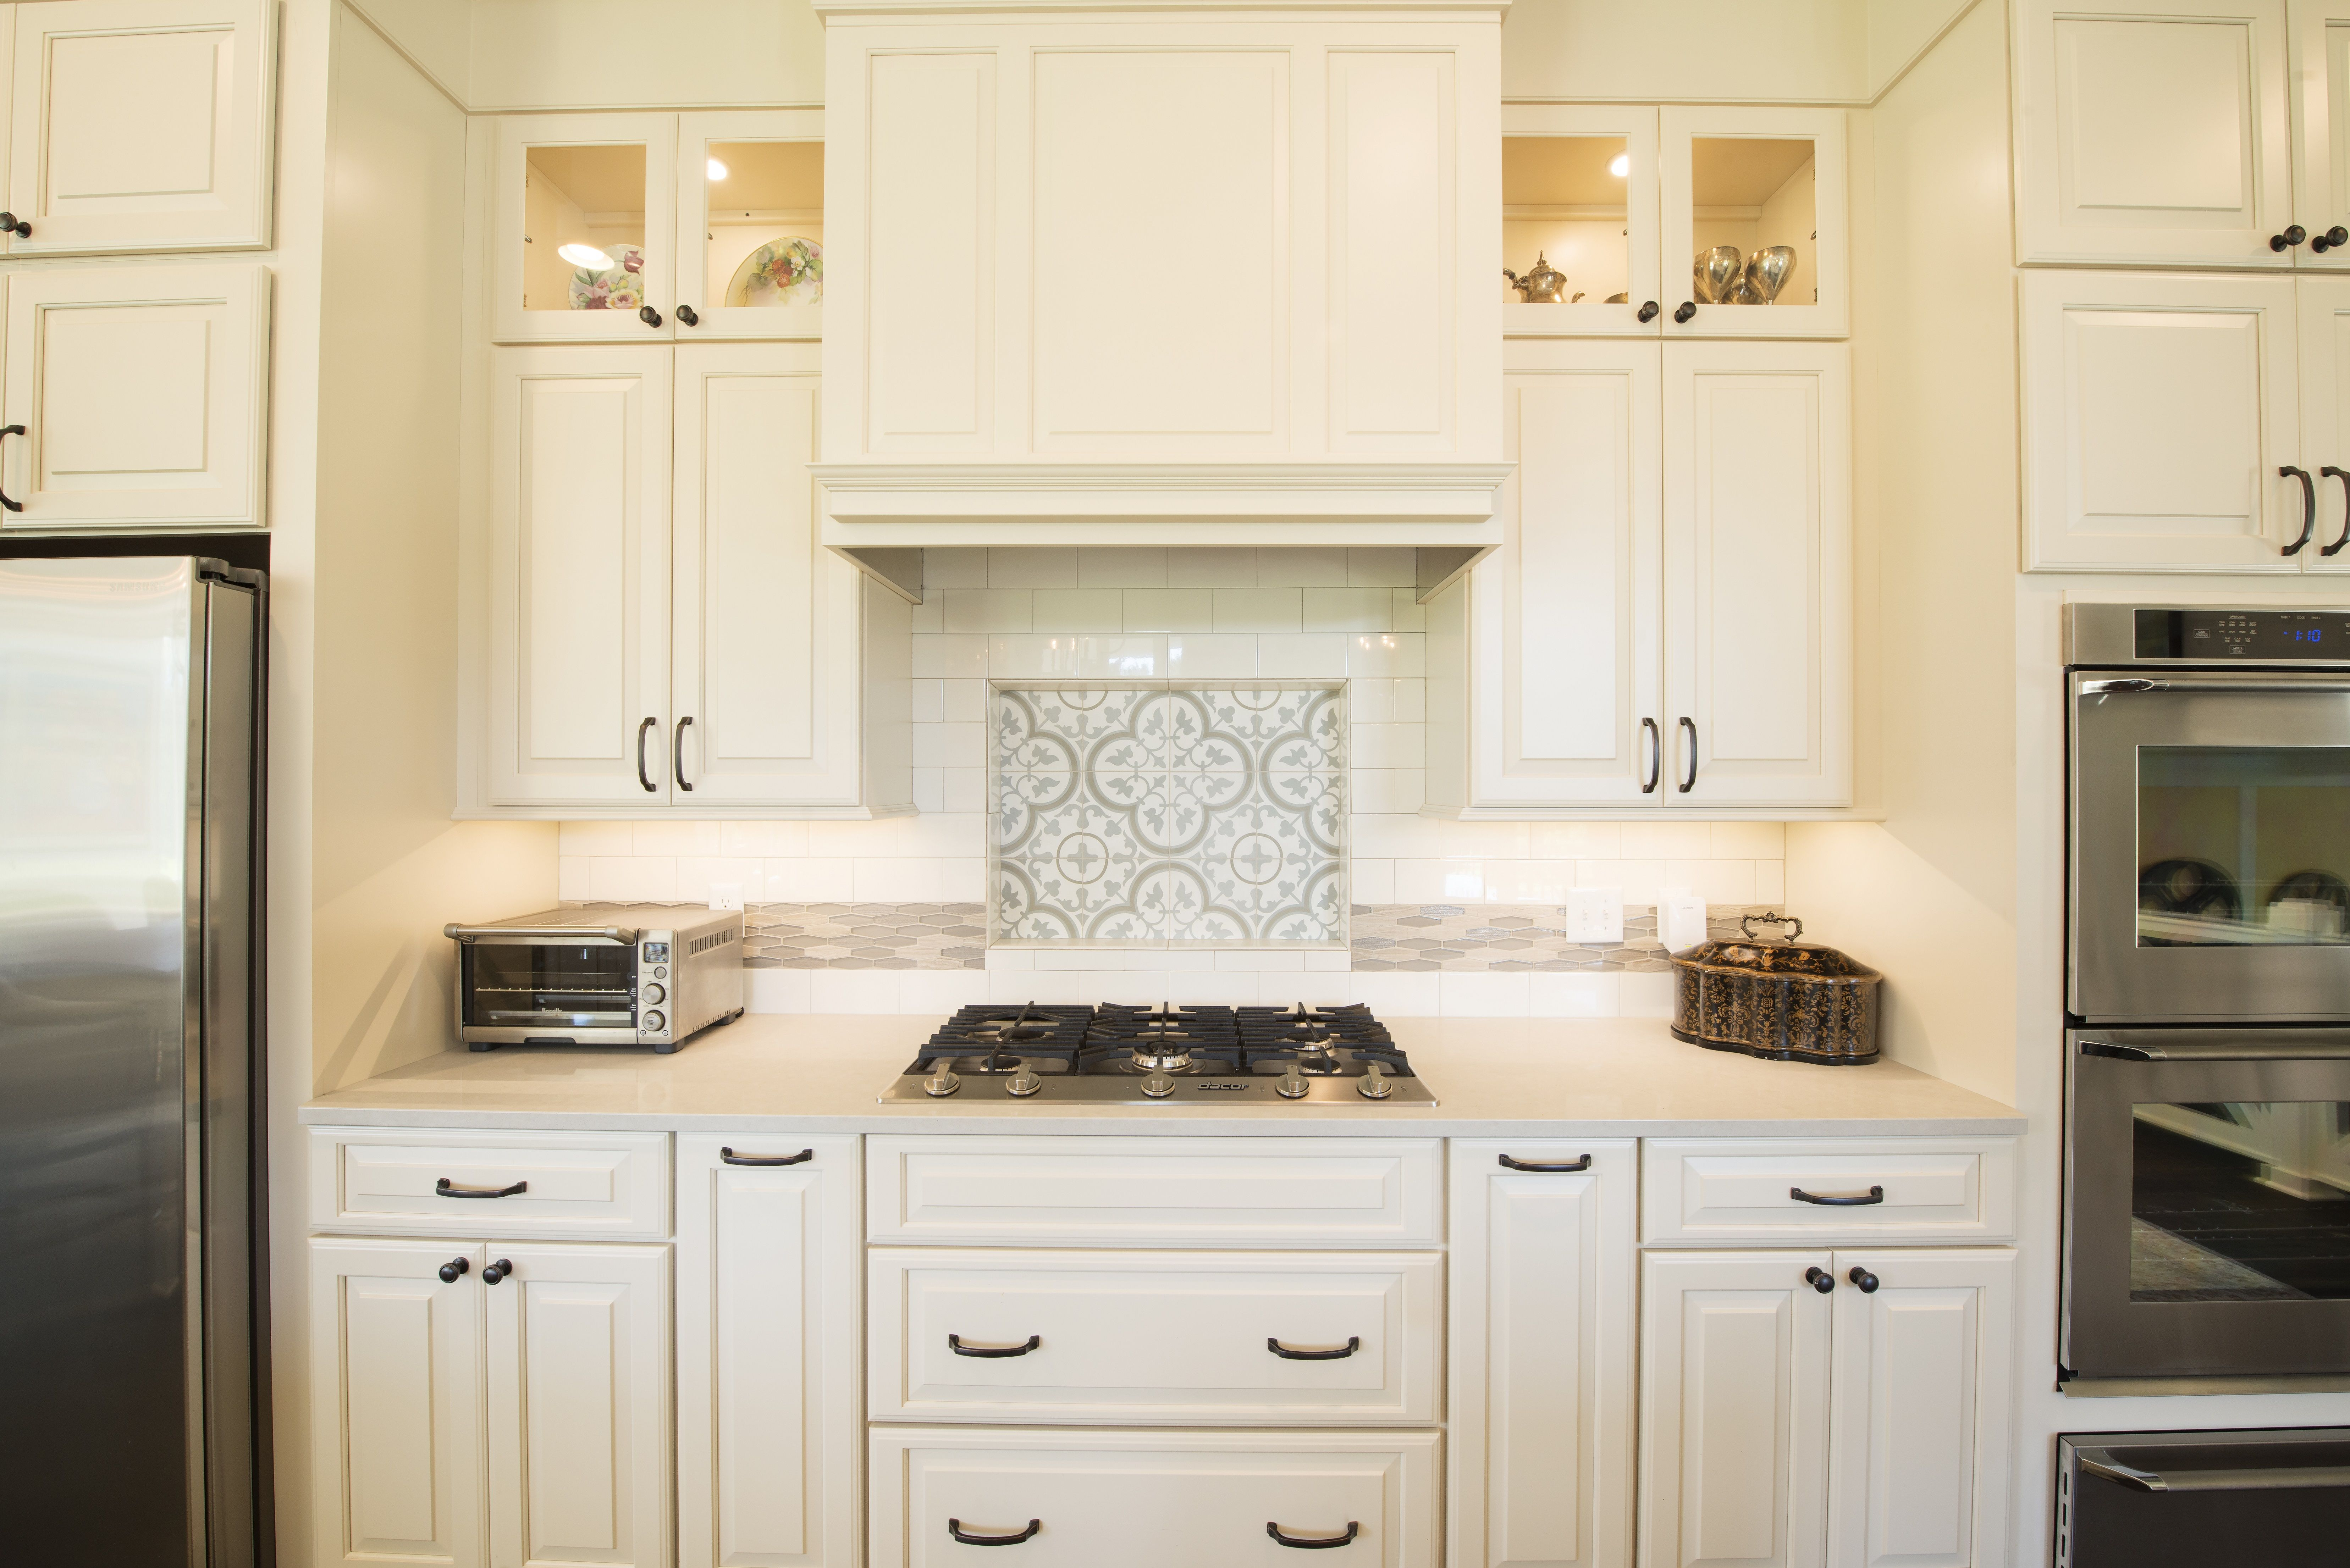 Traditional Kitchen Remodel In Indiana Subway Tile Layout With Focal Point Quartz Counter Tops With Images Kitchen Countertops Traditional Kitchen Countertops